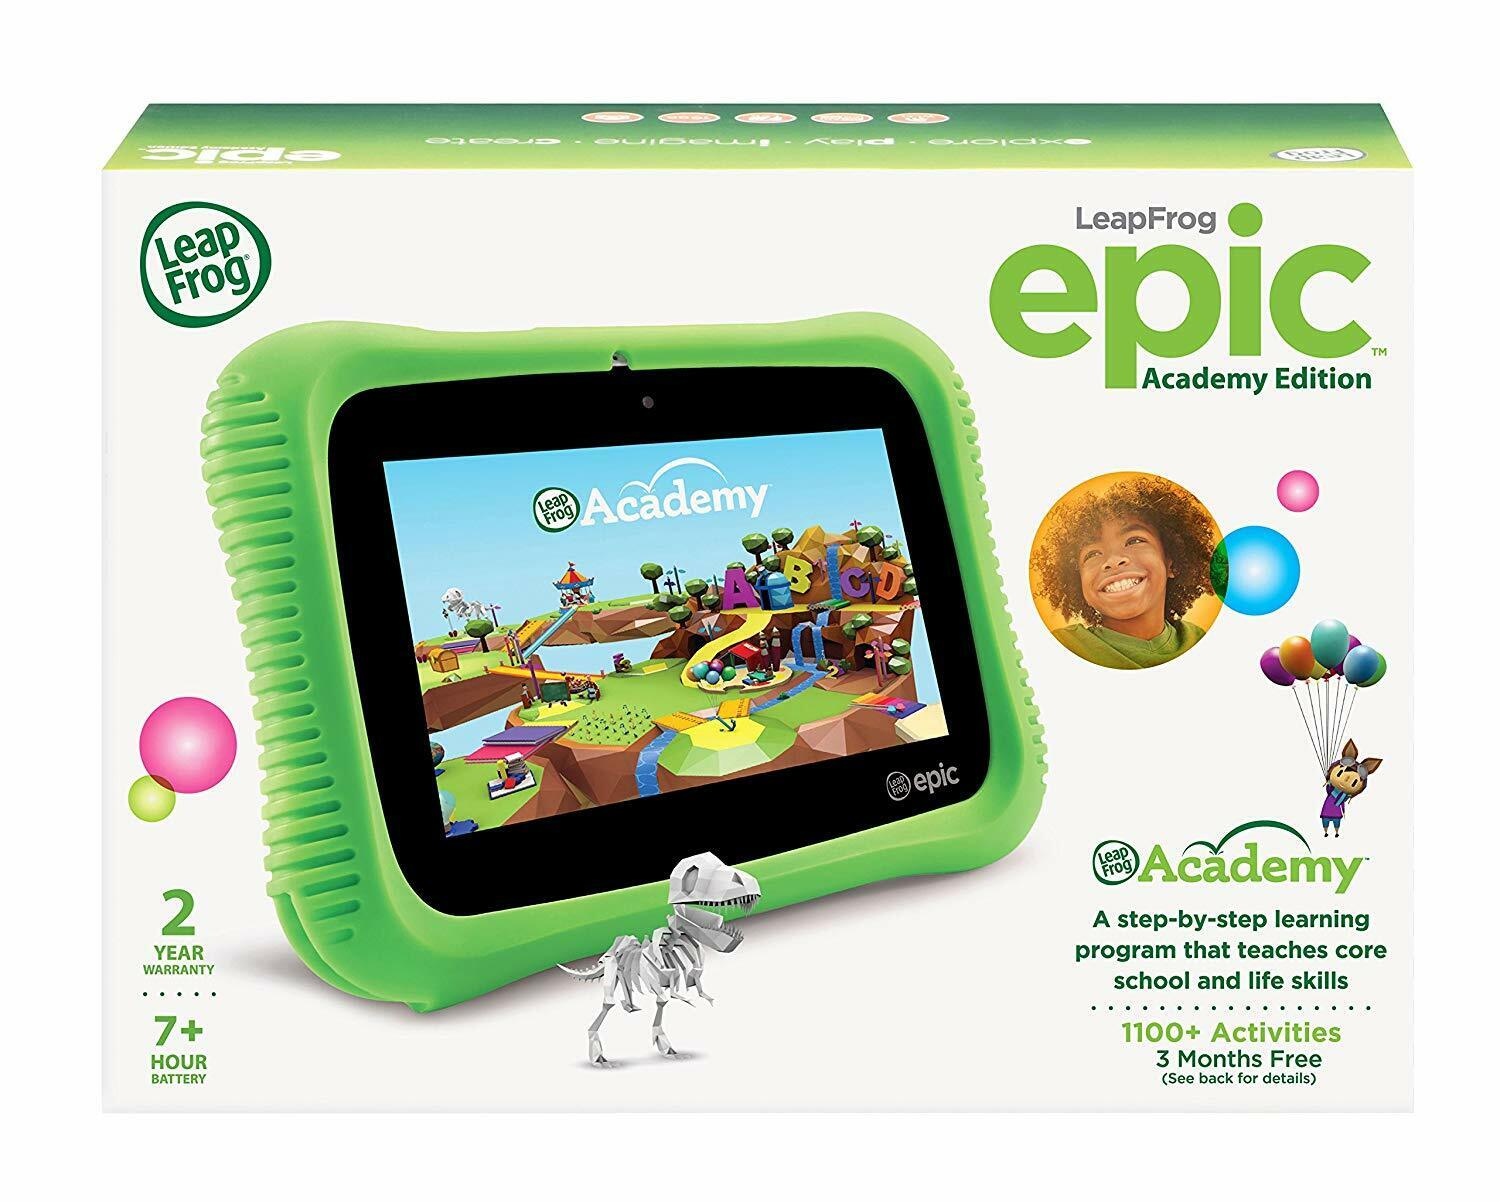 LeapFrog EPIC Academy Edition Children's Learning Tablet Gre